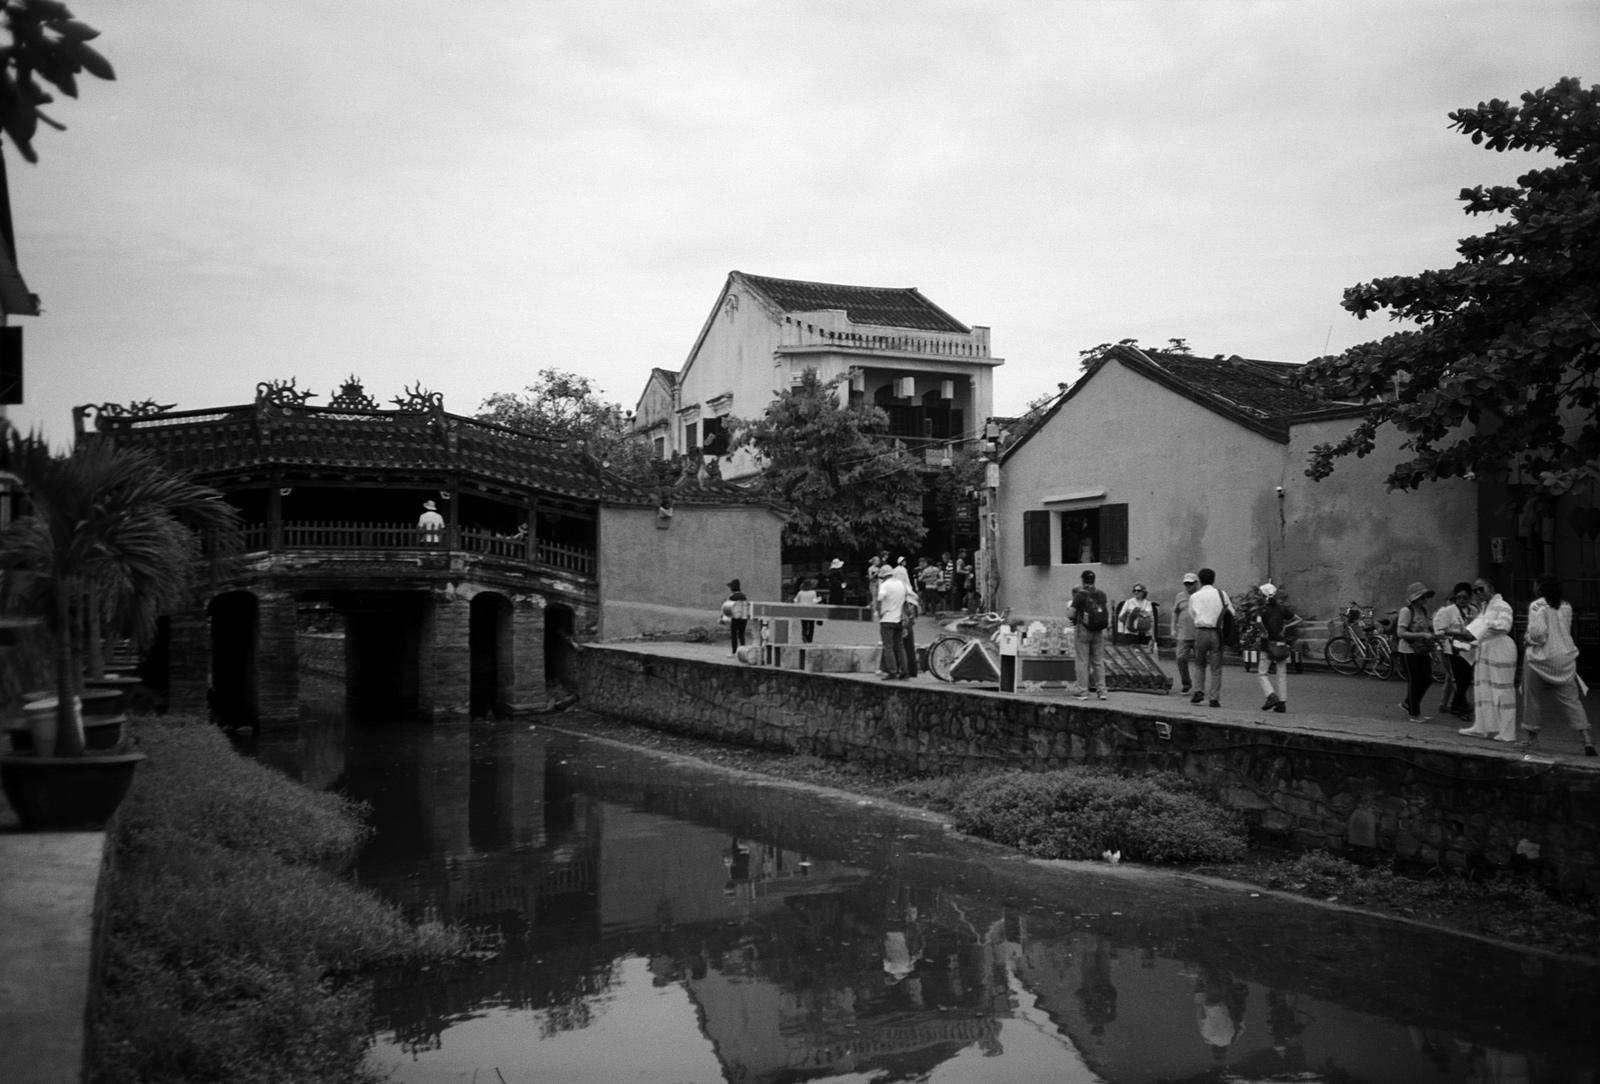 Japanese Covered Bridge, along the riverfront, Hoi An Vietnam,  Eastern Travels, photography by ioannis koussertari